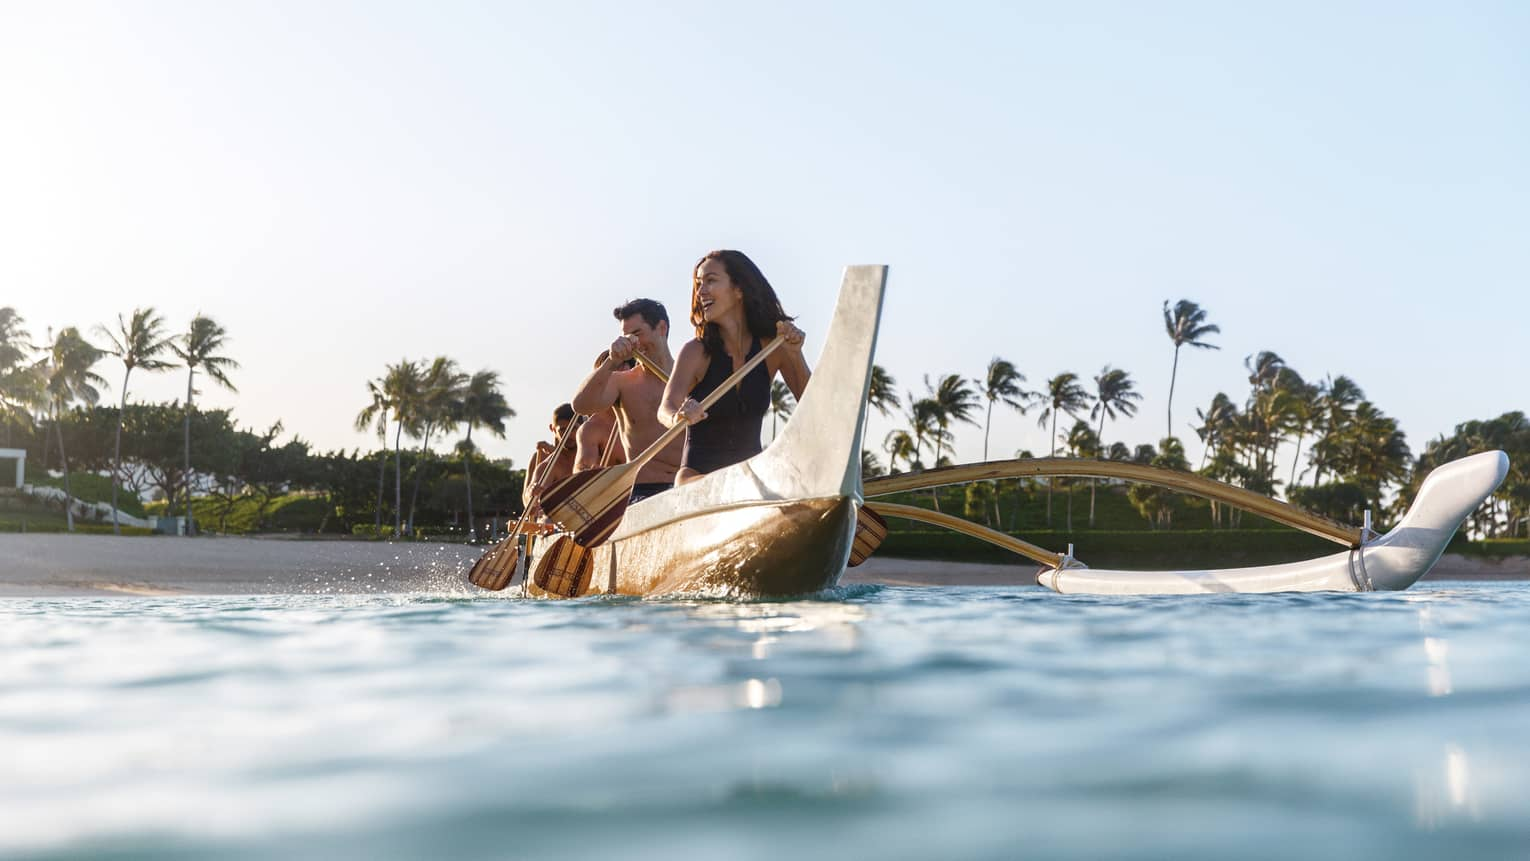 Group of friends paddle traditional wood outrigger canoe on ocean